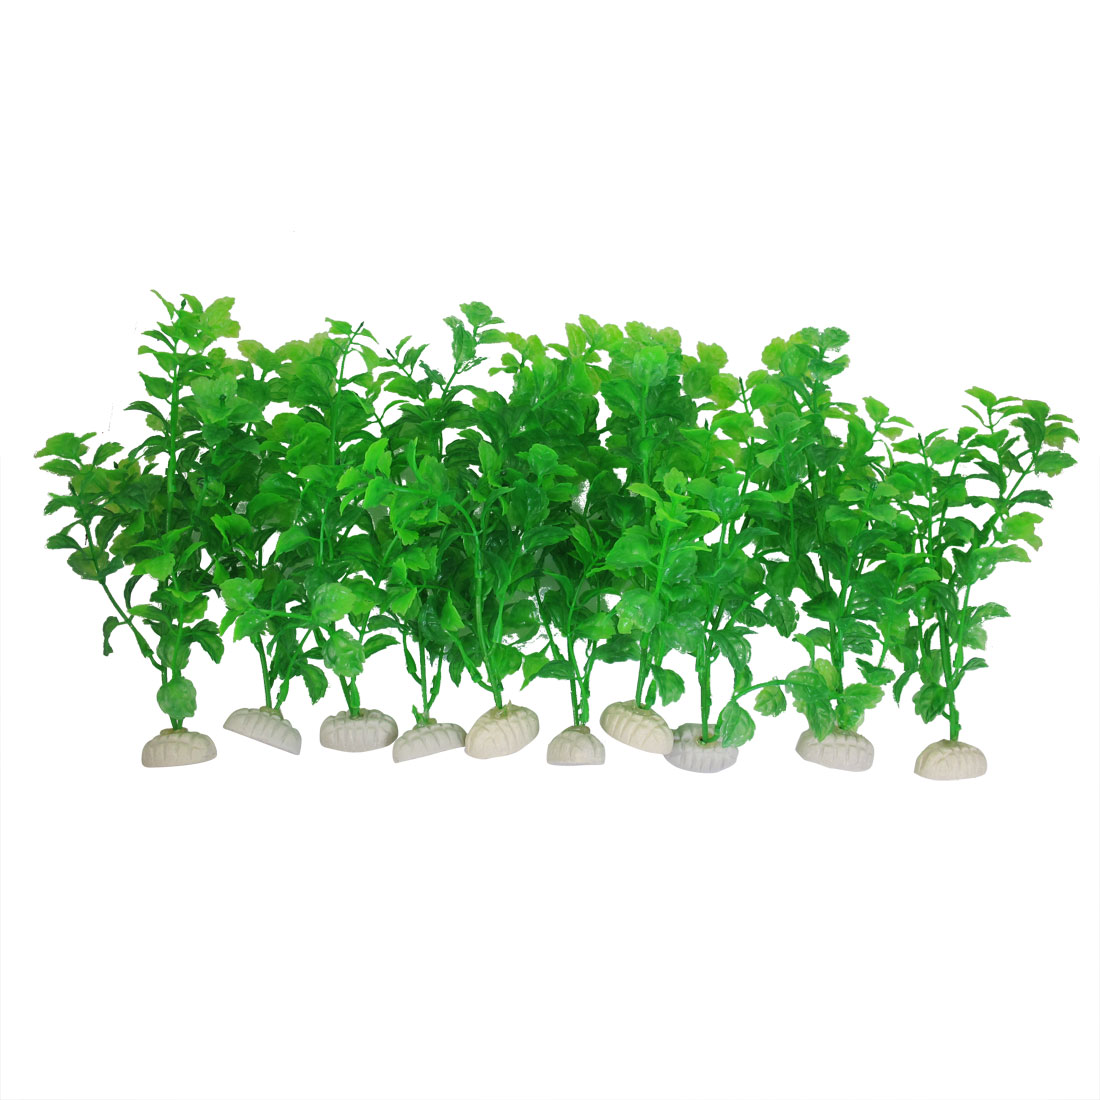 Ceramic Base Green Plastic Fish Tank Aquarium Ornament Aquatic Plant 10Pcs